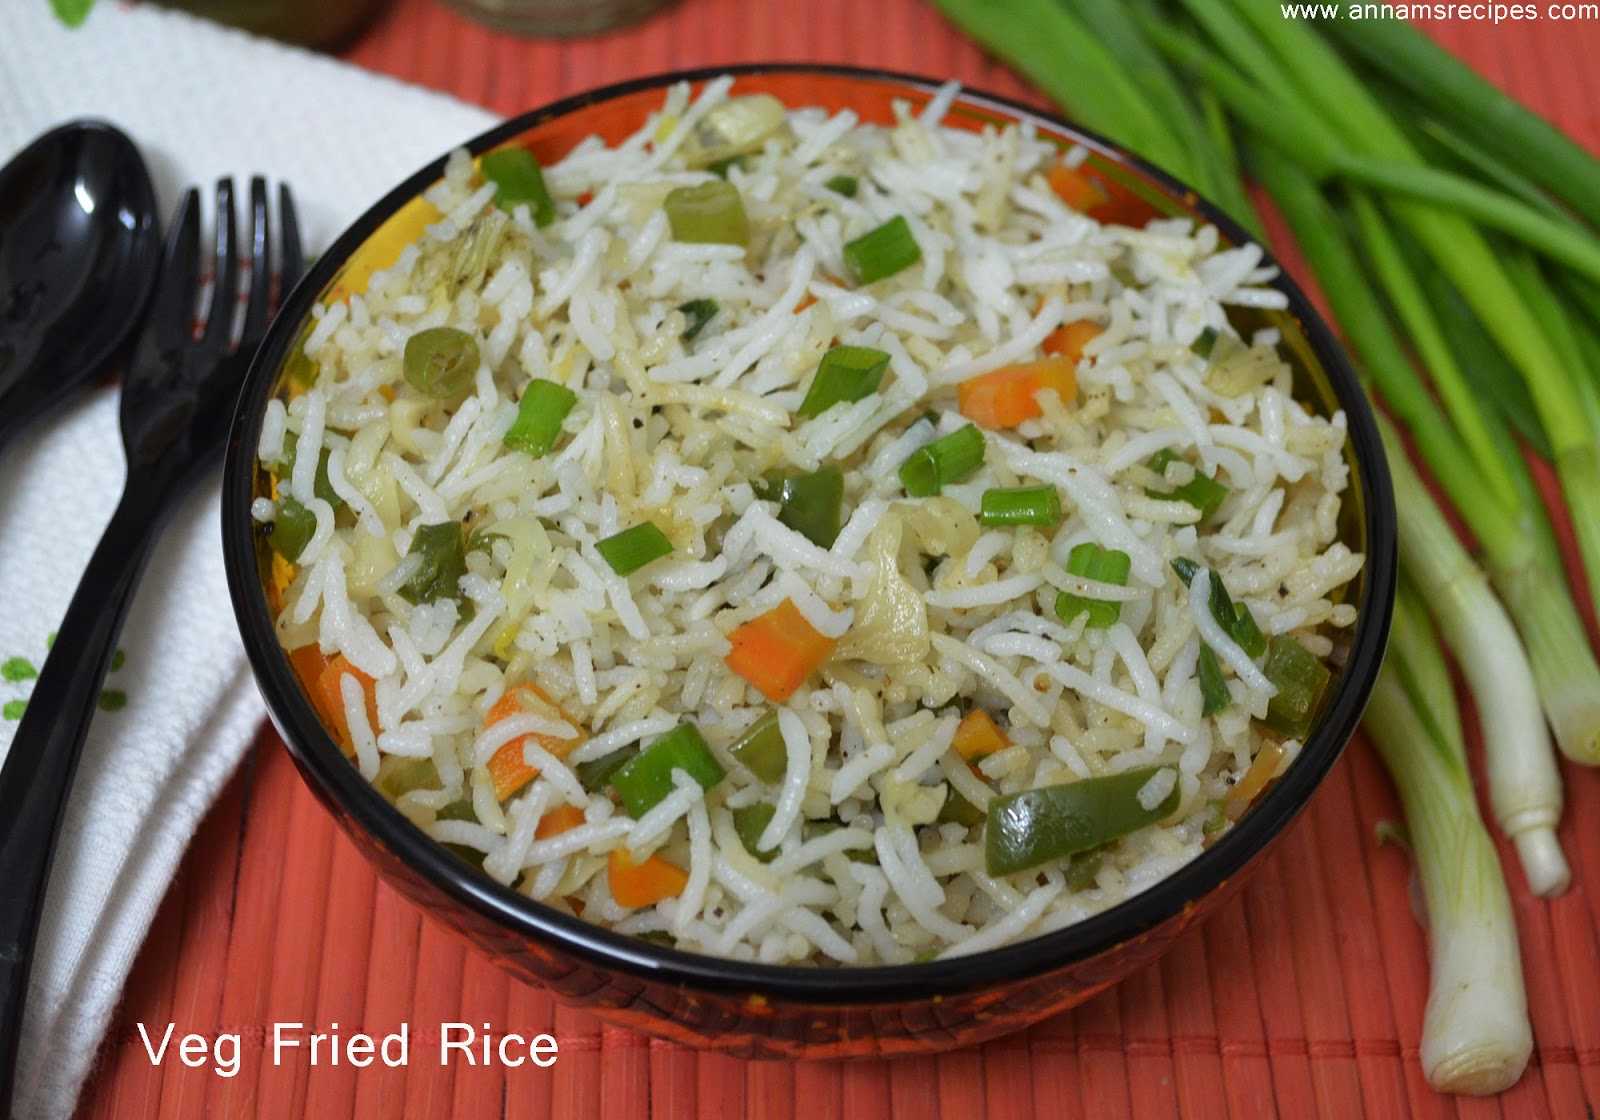 Veg Fried Rice / Chinese Fried Rice | Annam's Recipes